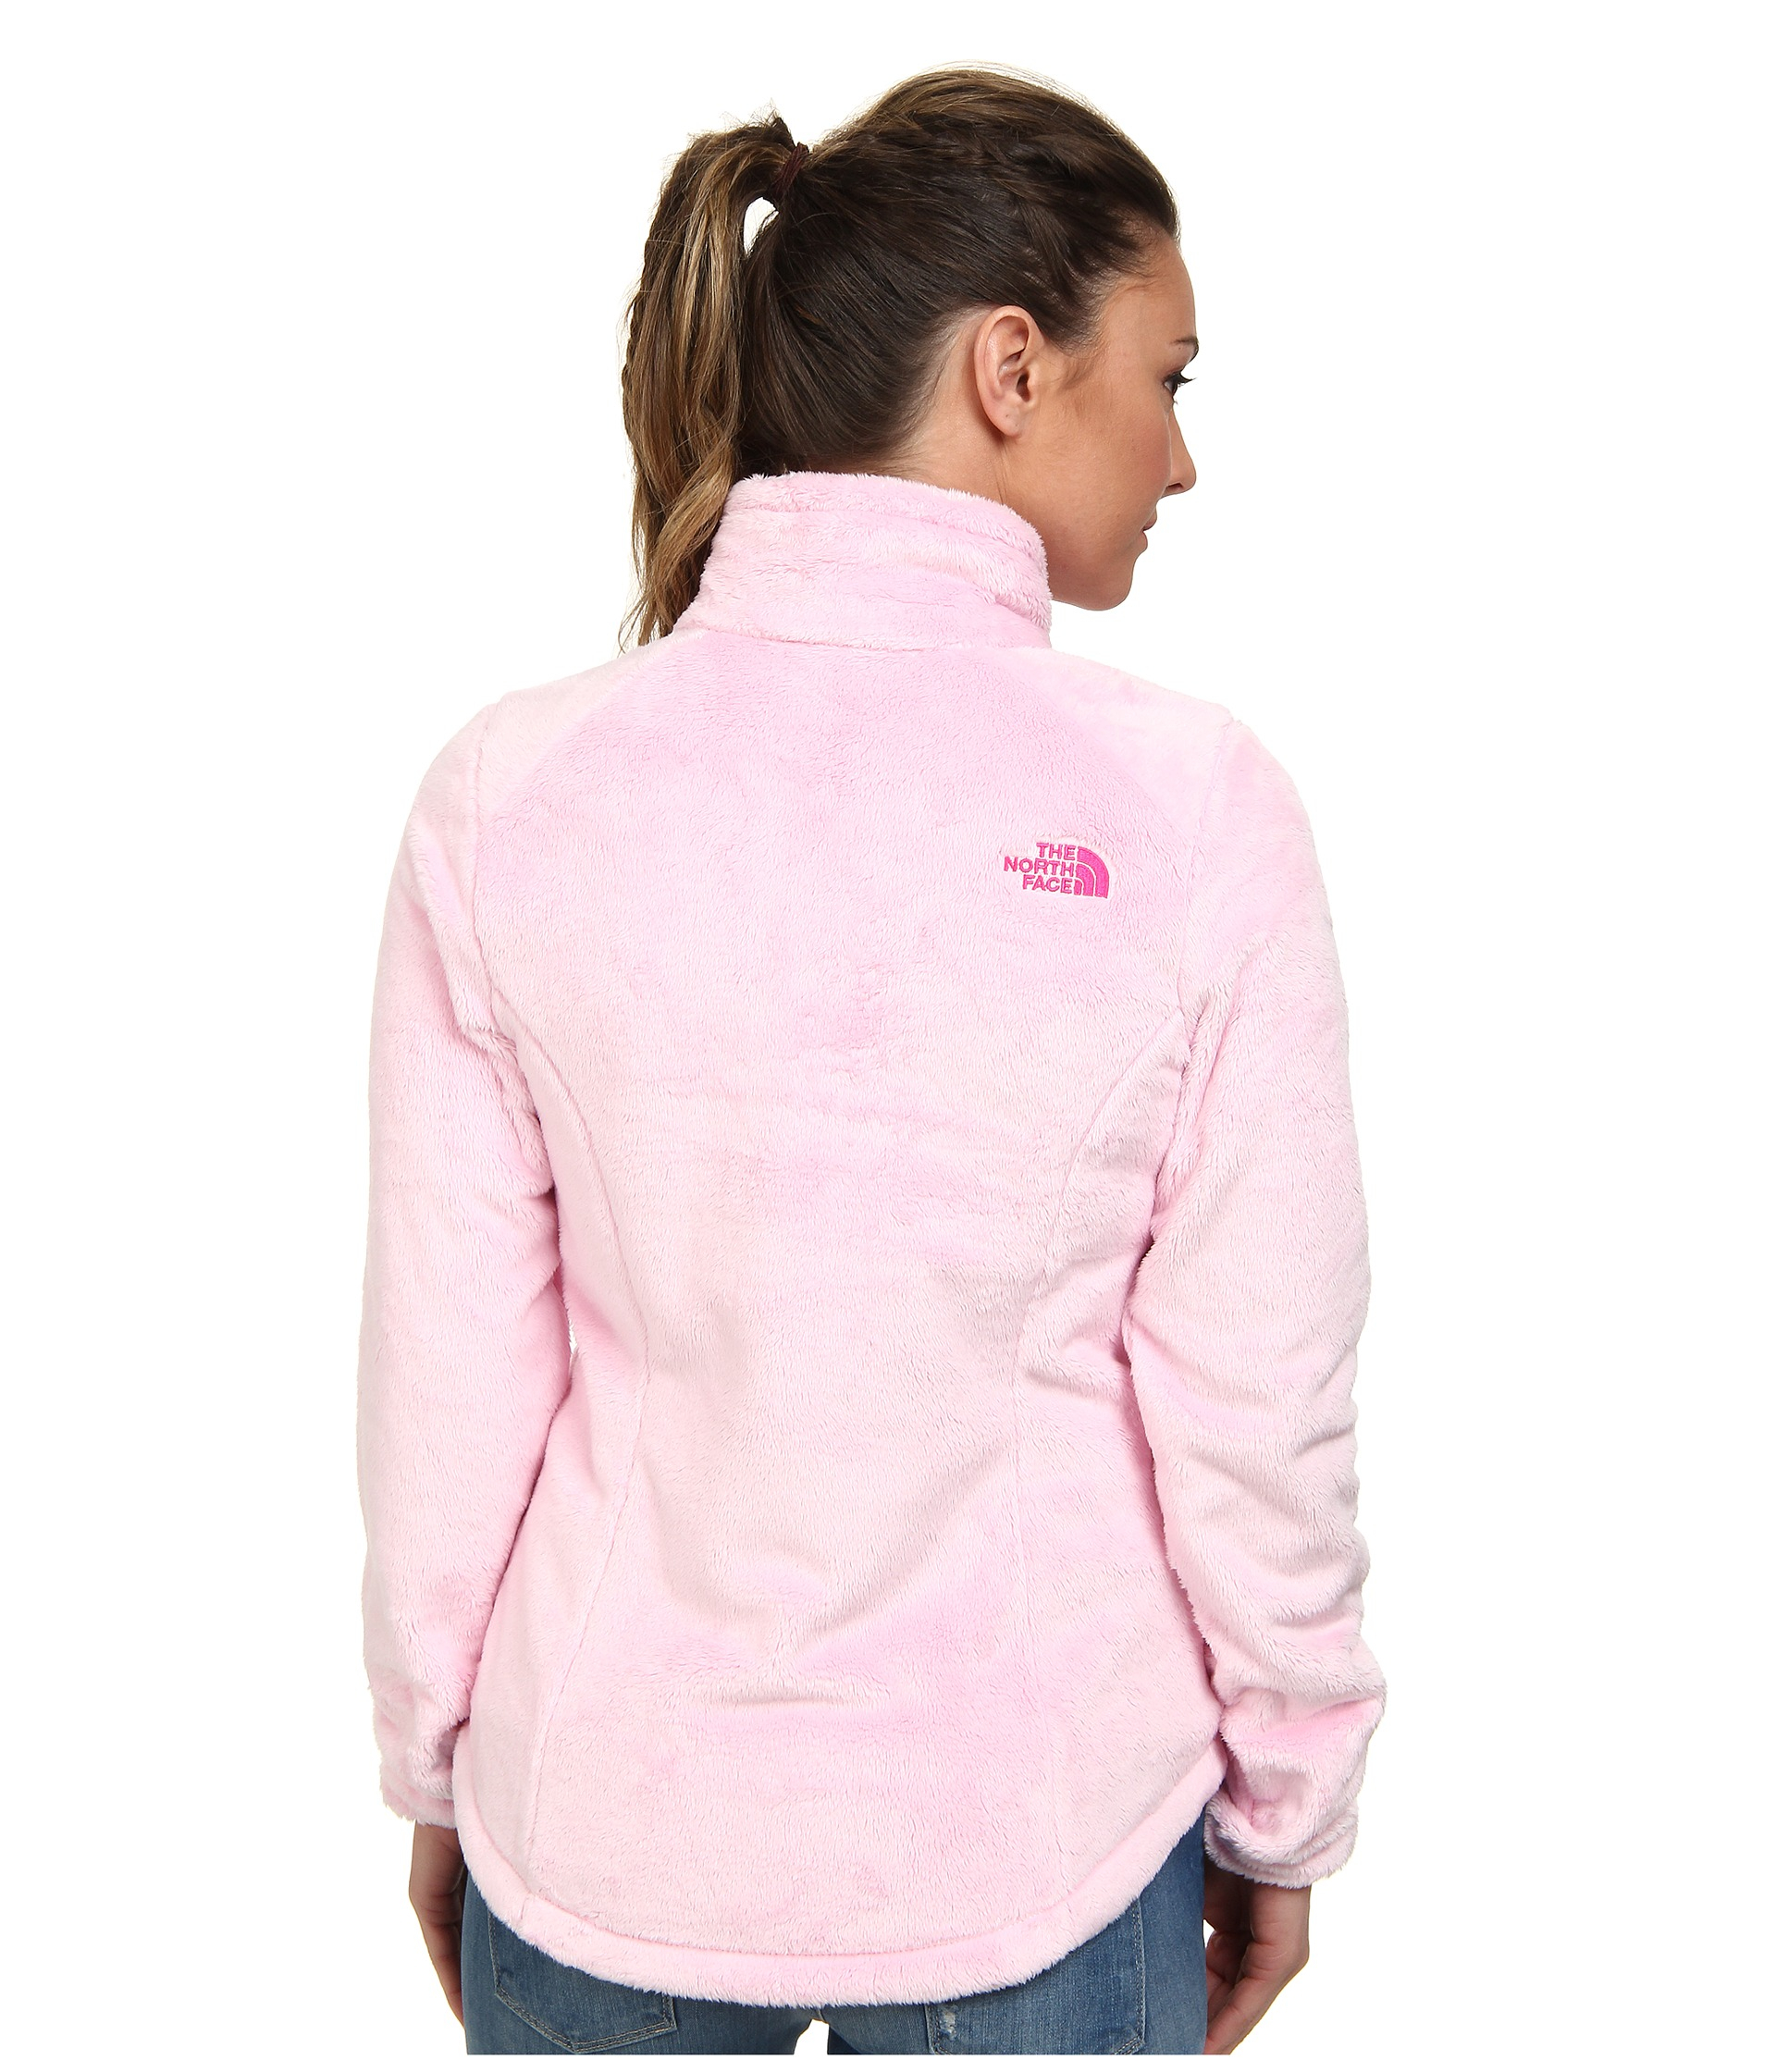 c0c59f170 The North Face Pink Osito 2 Jacket